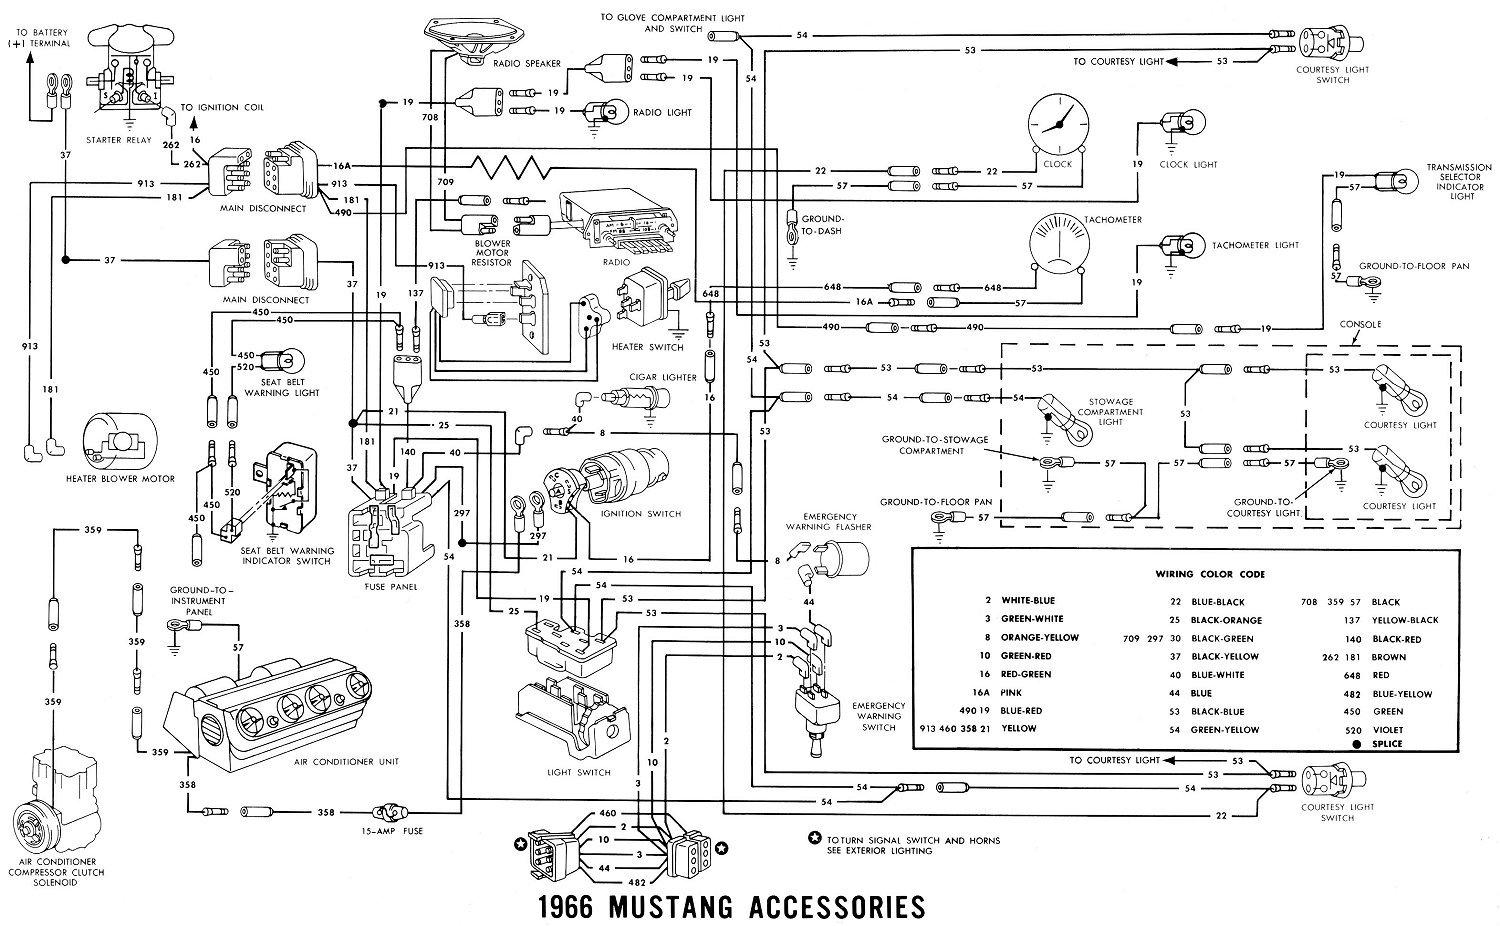 66acces1 1970 mustang wiring diagram 1970 mustang ignition switch wiring 1970 ford mustang ignition switch wiring diagram at bayanpartner.co